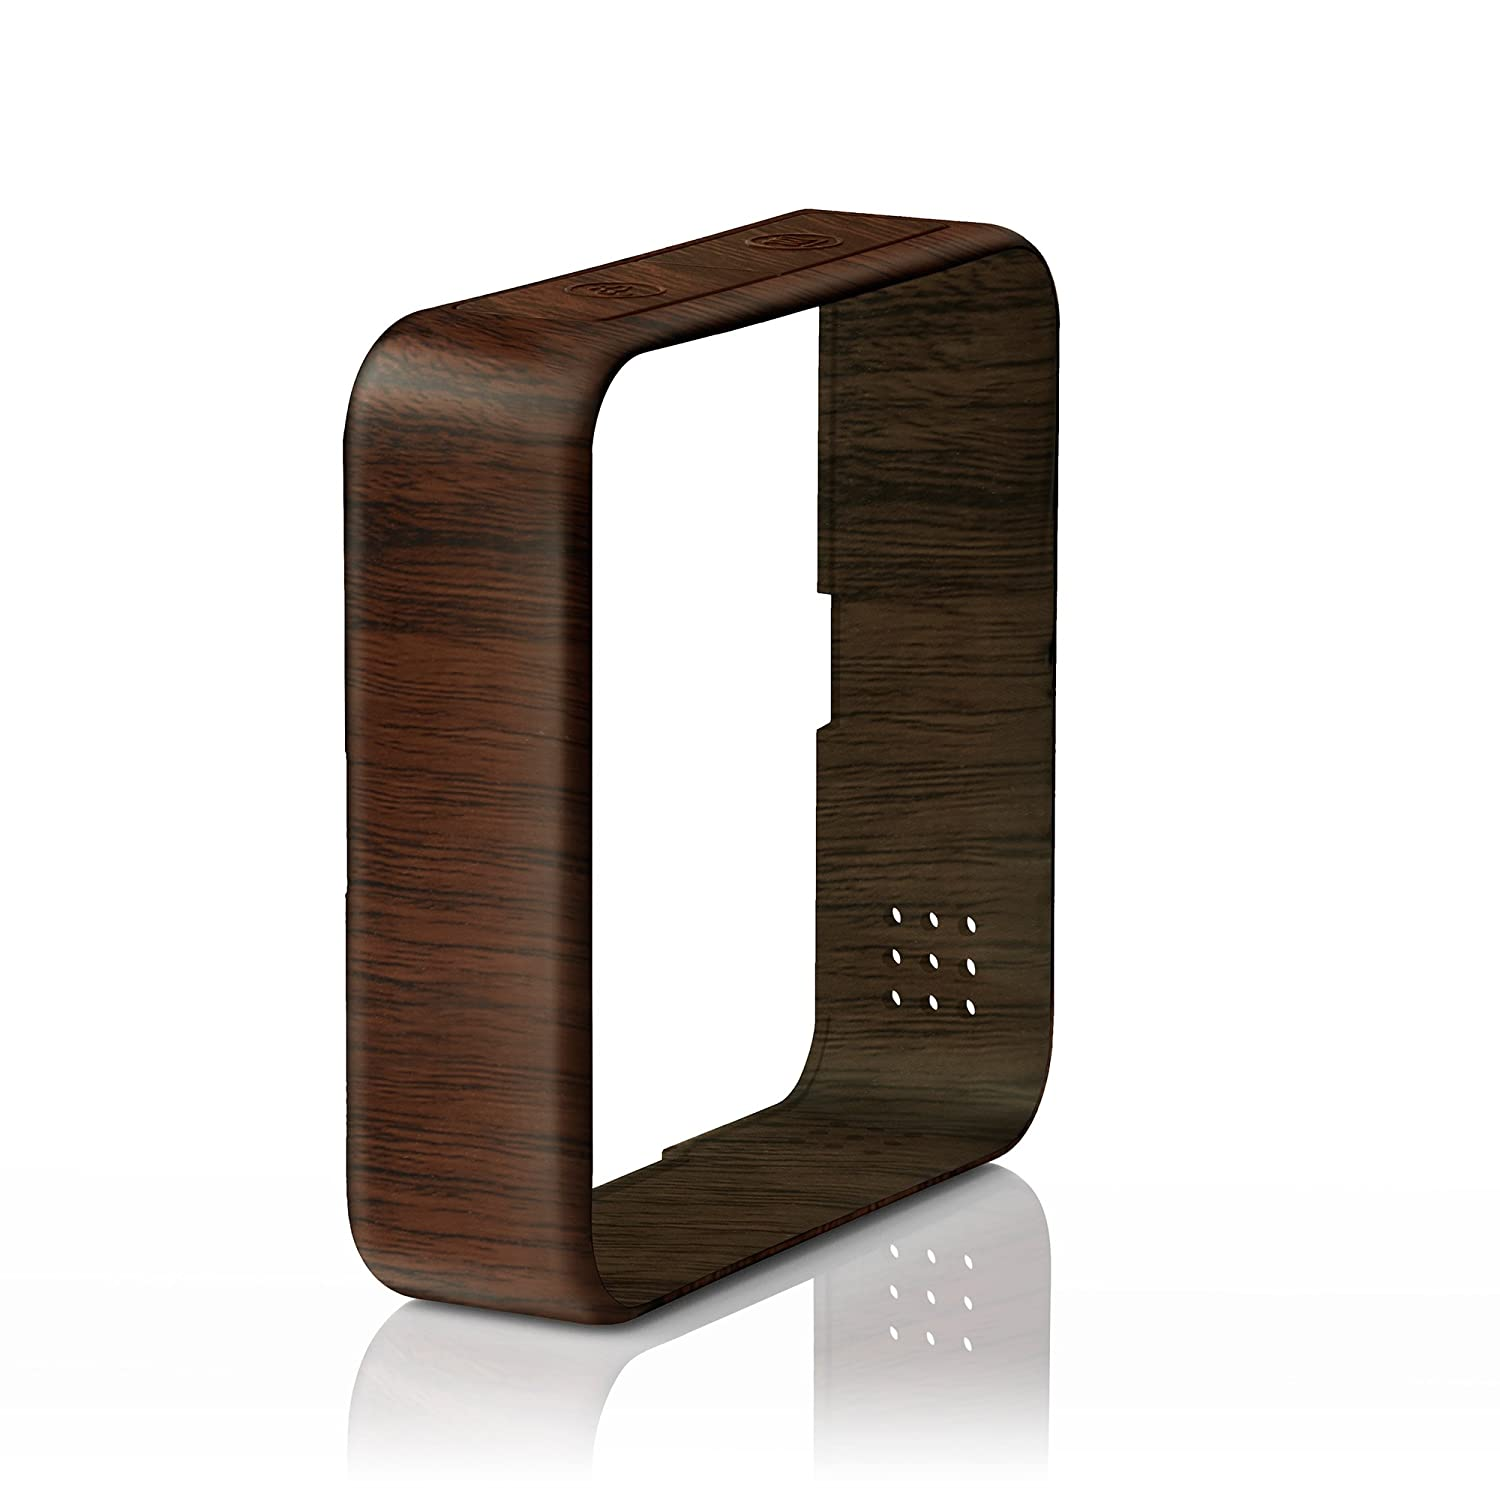 Hive active heating and hot water thermostat with self installation hive active thermostat frame wood effect cheapraybanclubmaster Image collections